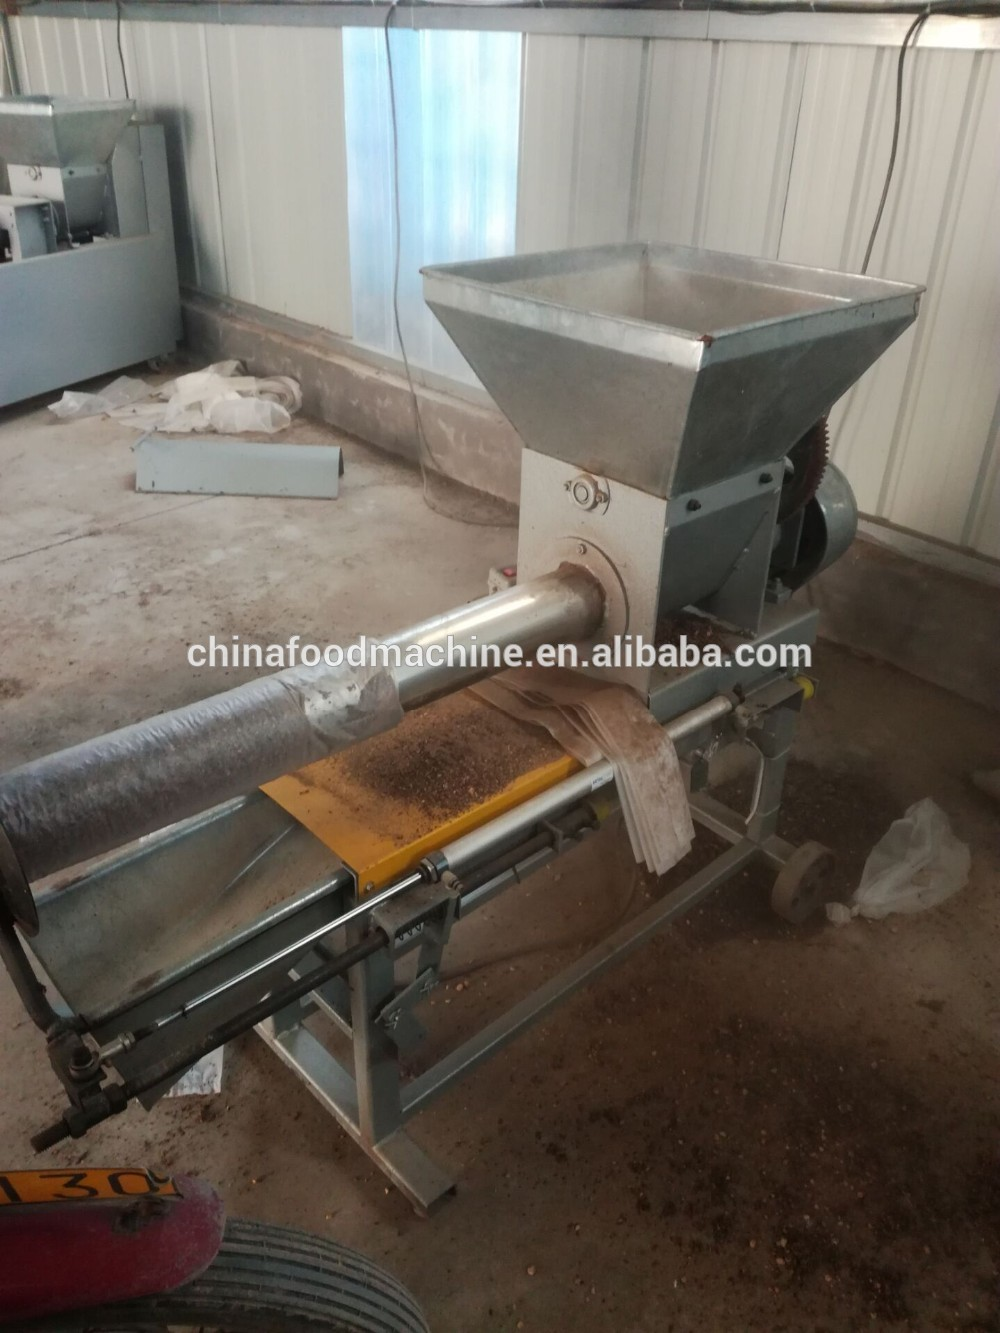 shiitake mushroom bag filling machine